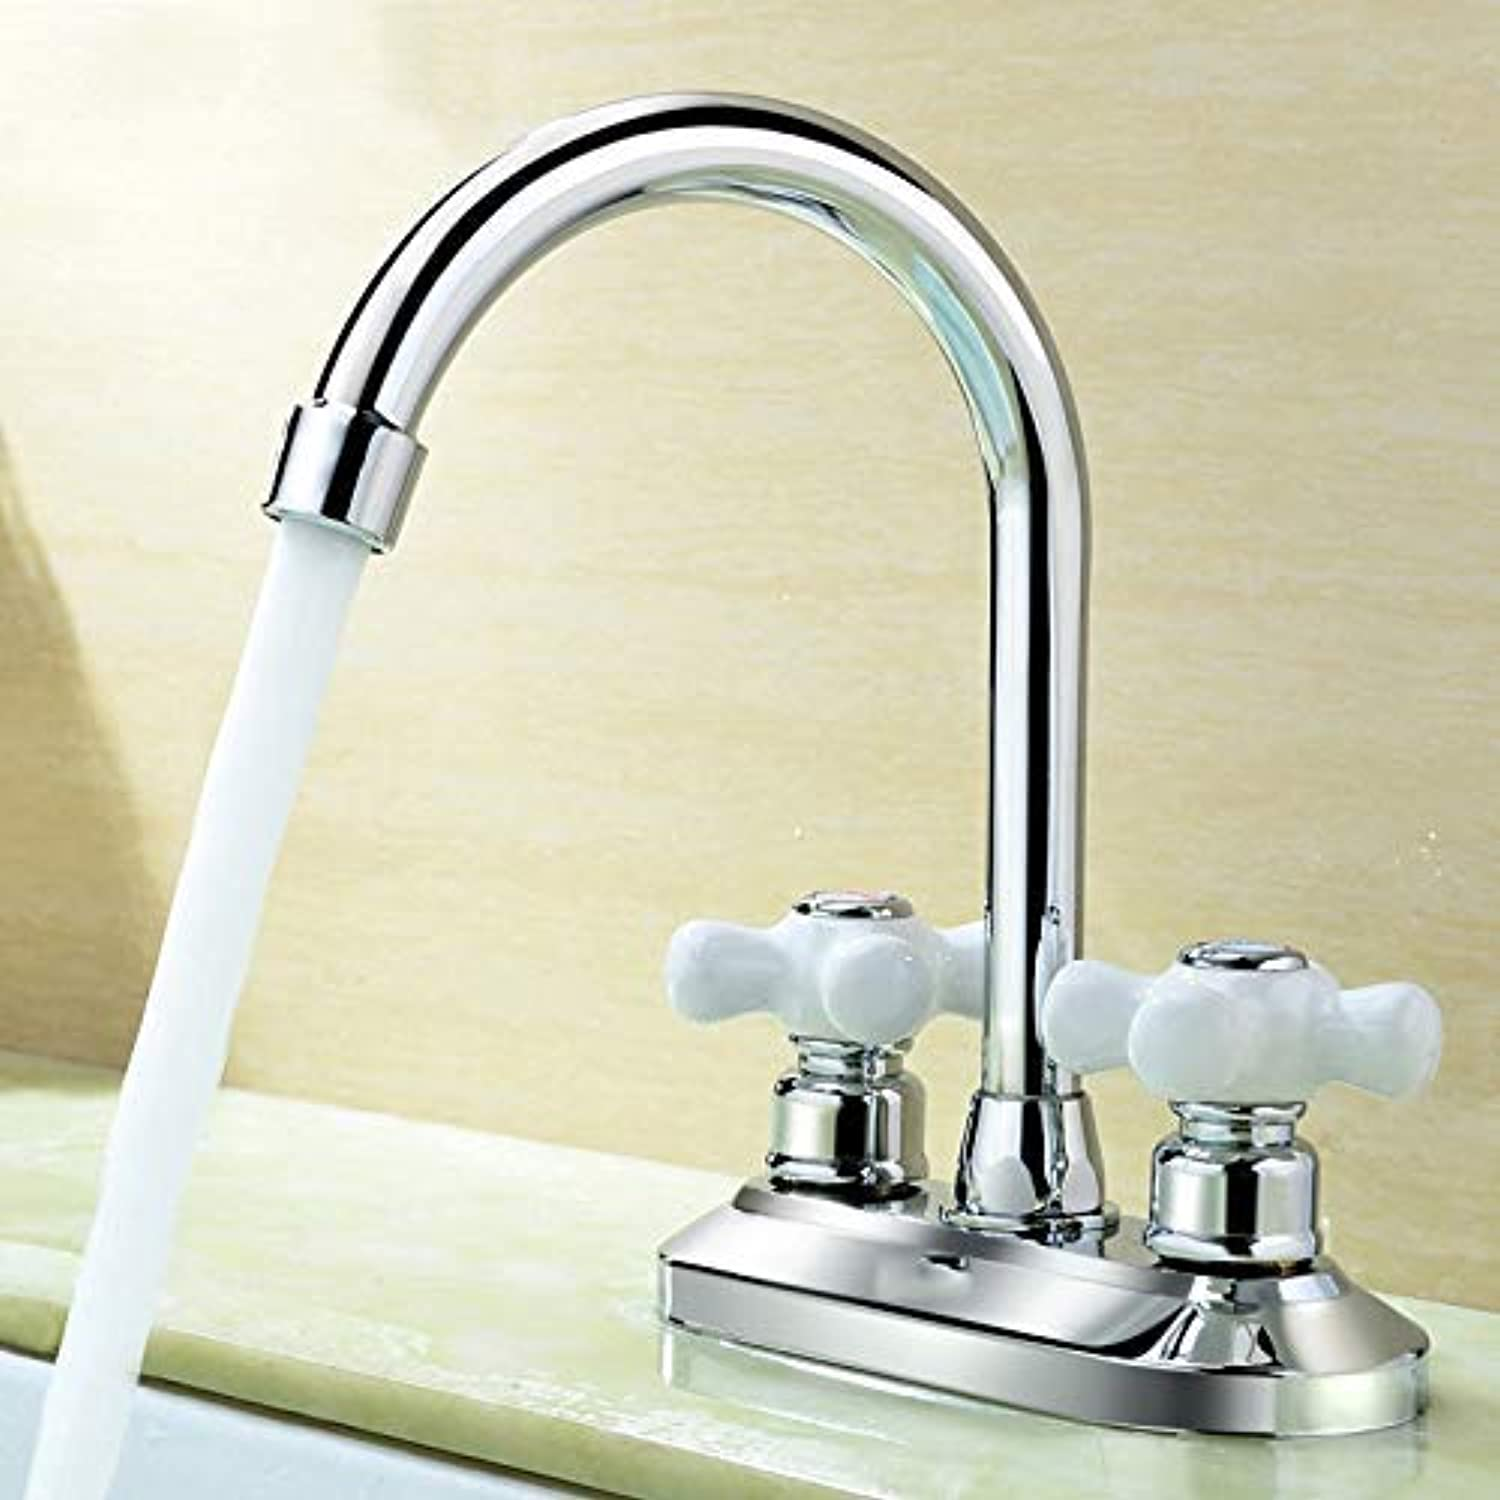 Oudan Basin Mixer Tap Bathroom Sink Faucet Double Double Handle hot and cold basin tap,T (color   Q)